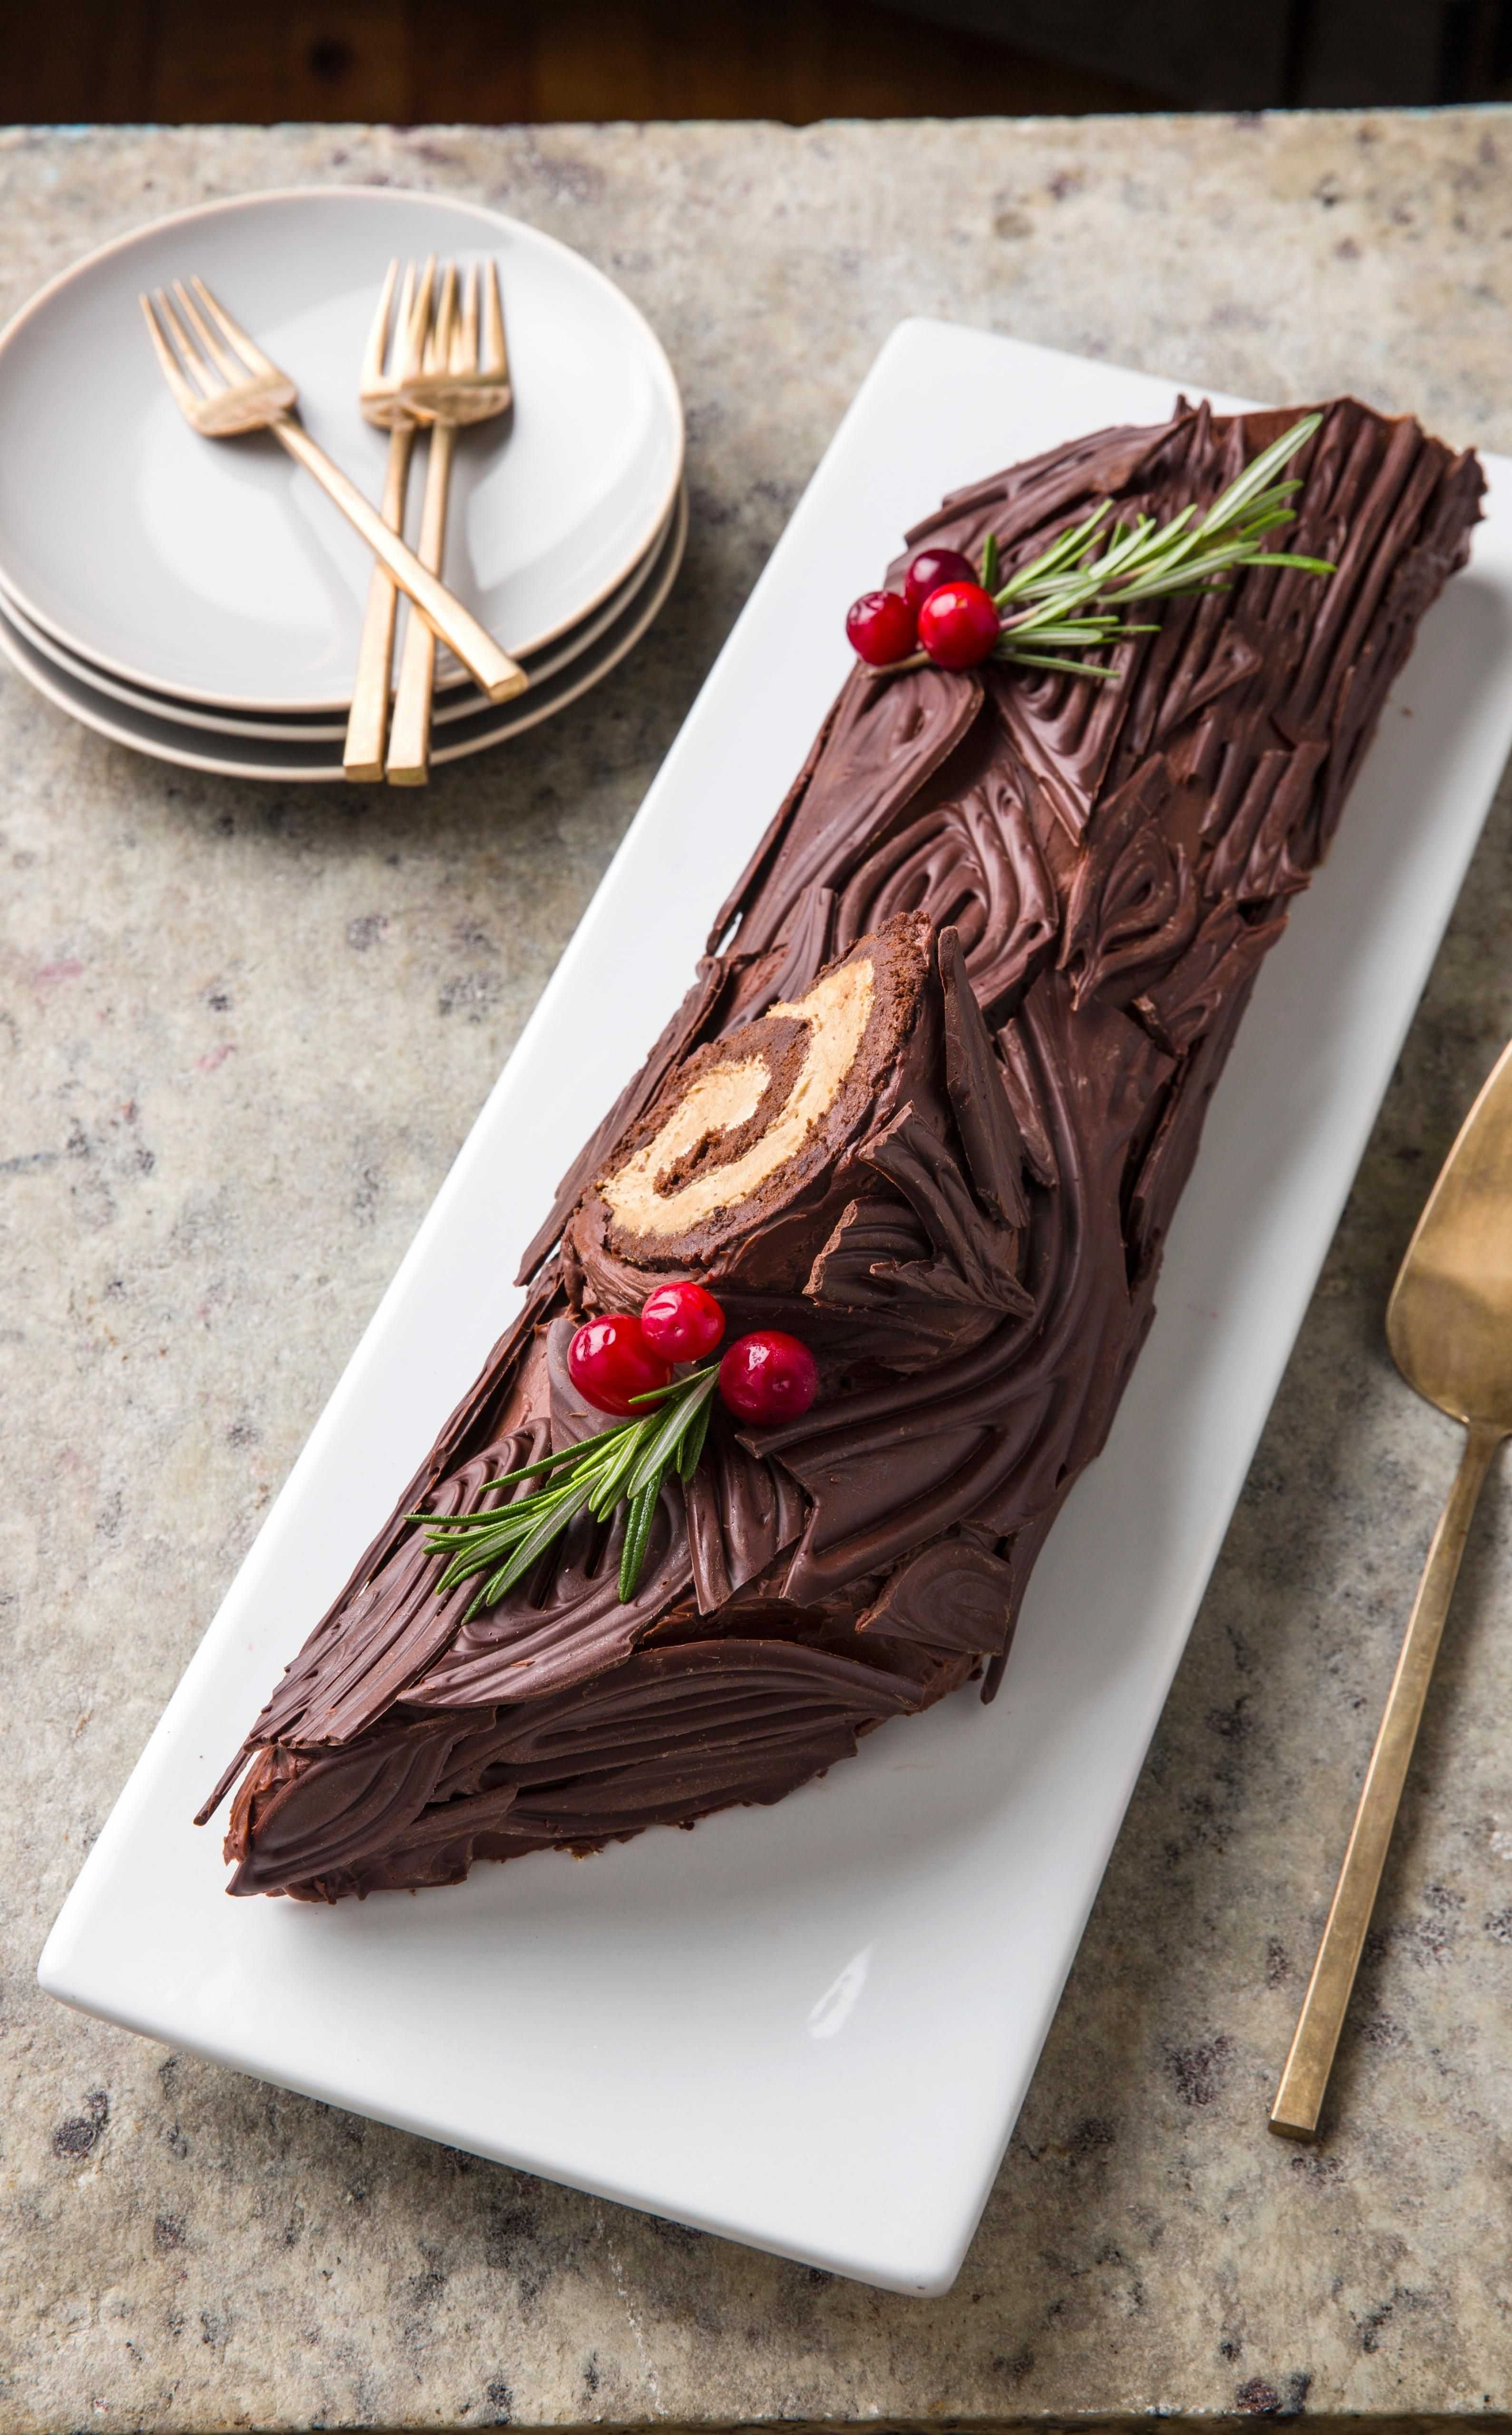 Yule Log. In terms of showstopping Christmas desserts, a